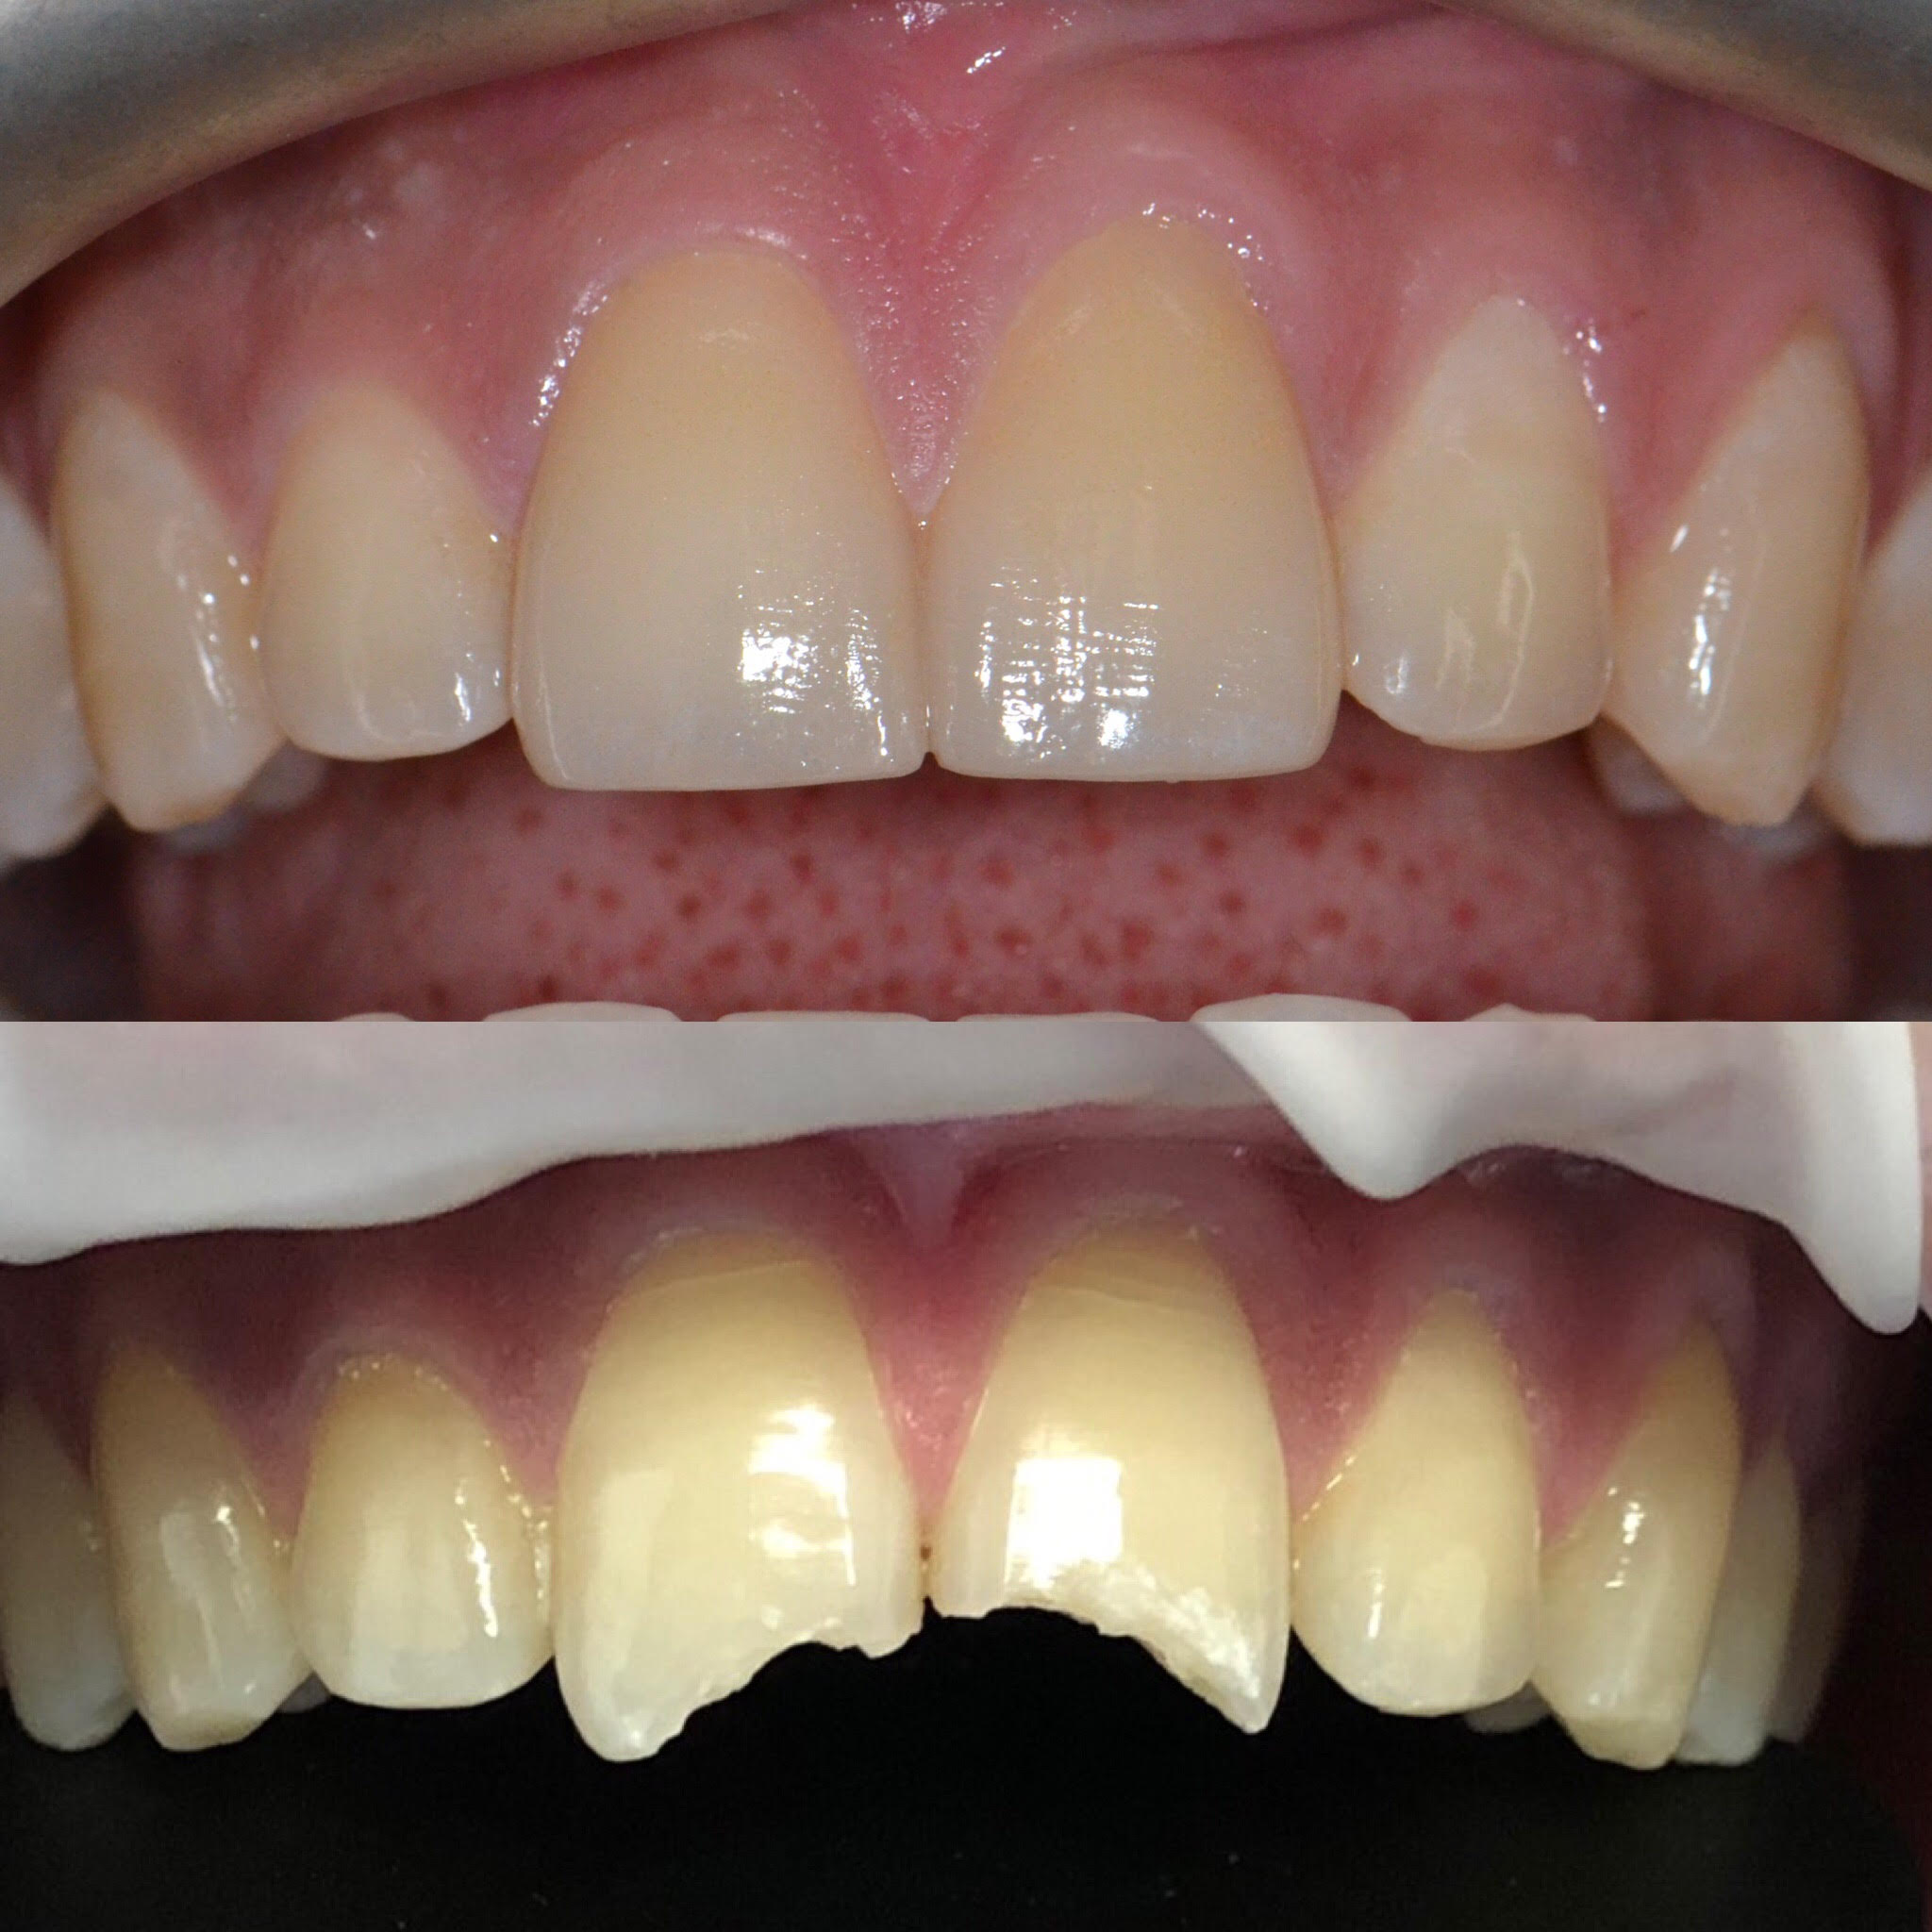 Two front teeth restored to its normal shape with Porcelain Crown.